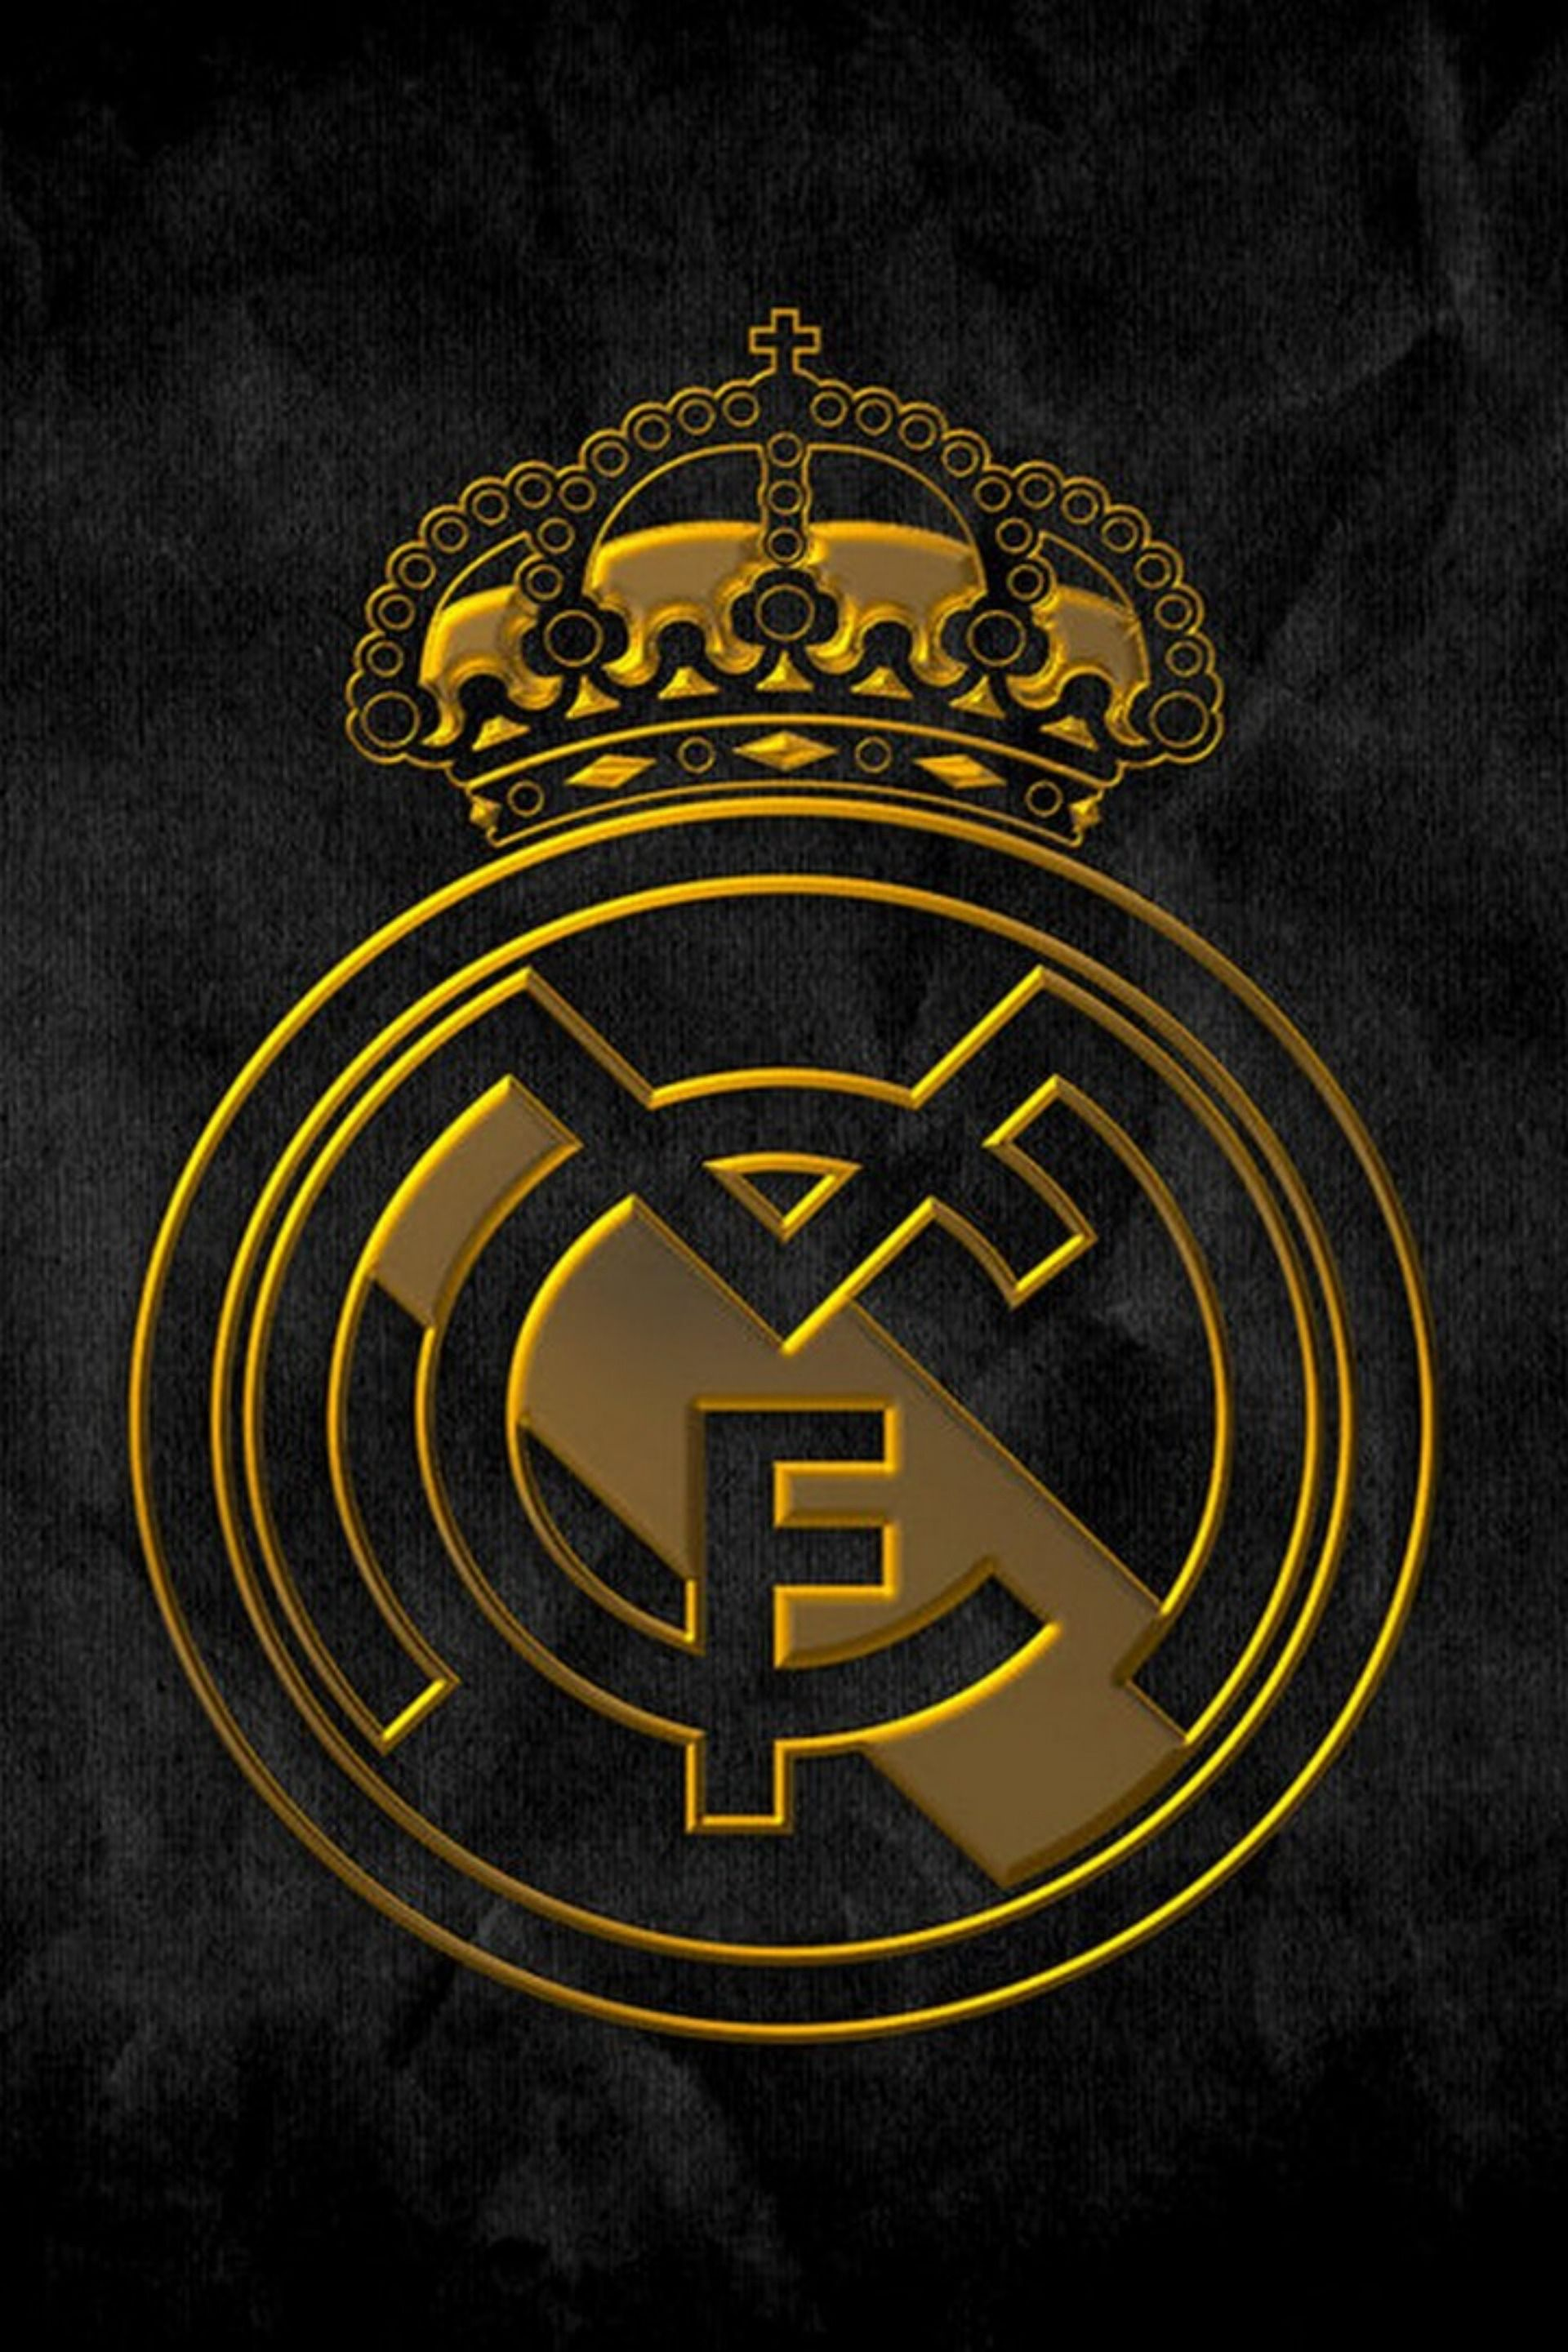 Real Madrid HD wallpaper 2019 for mobile. Visit our